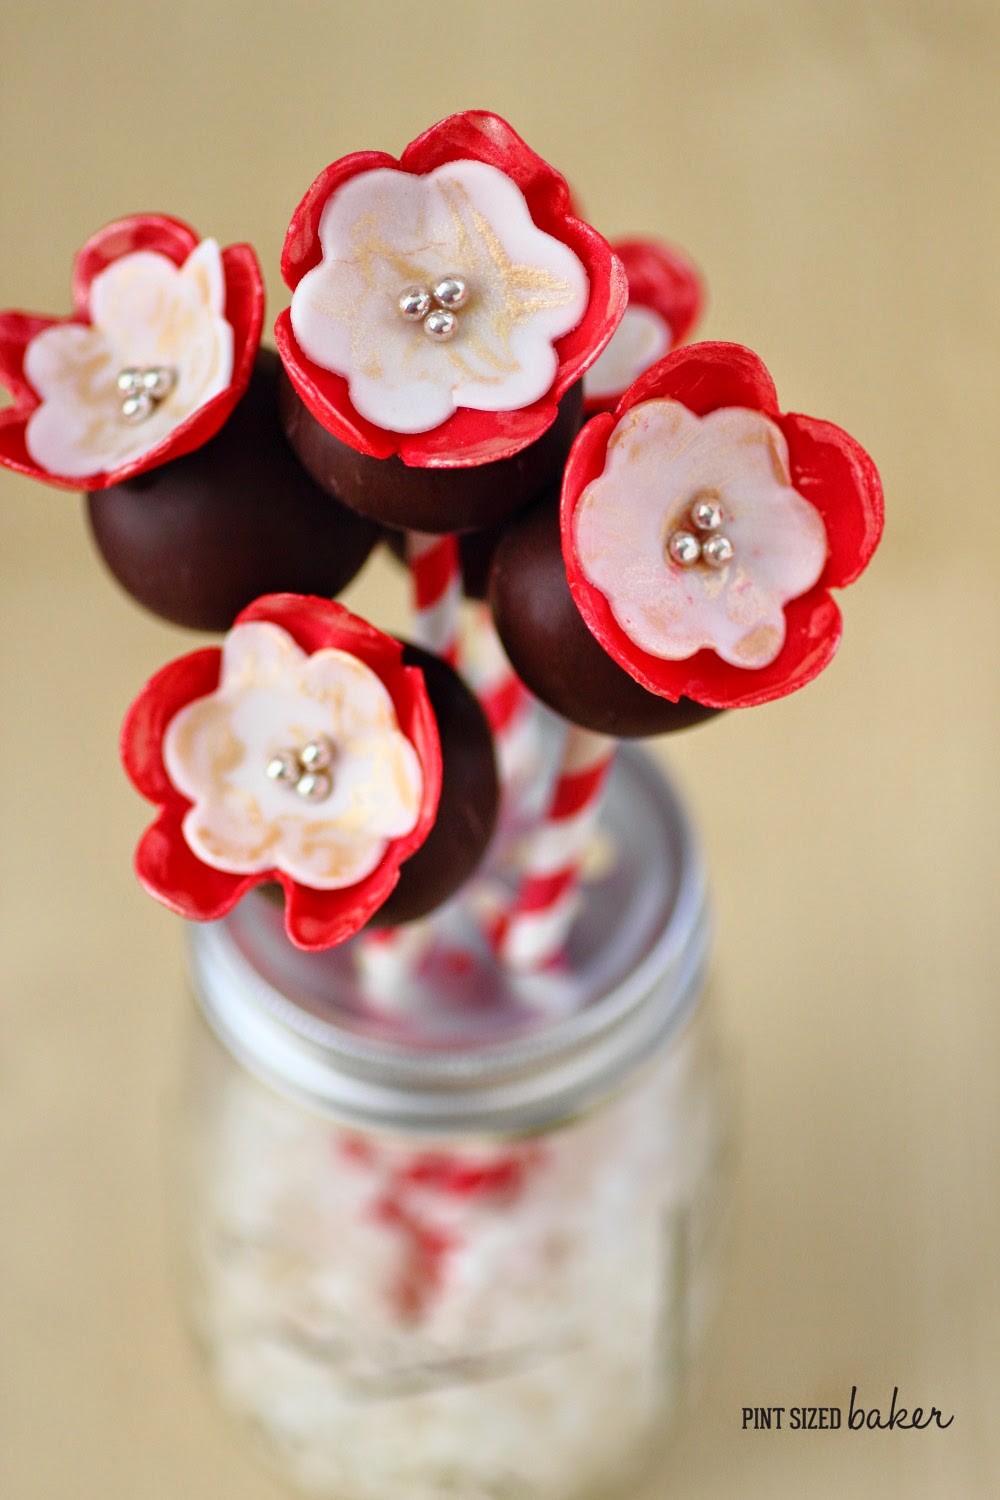 This bouquet of pretty fondant flowered cake pops would be a great gift for my someone special.